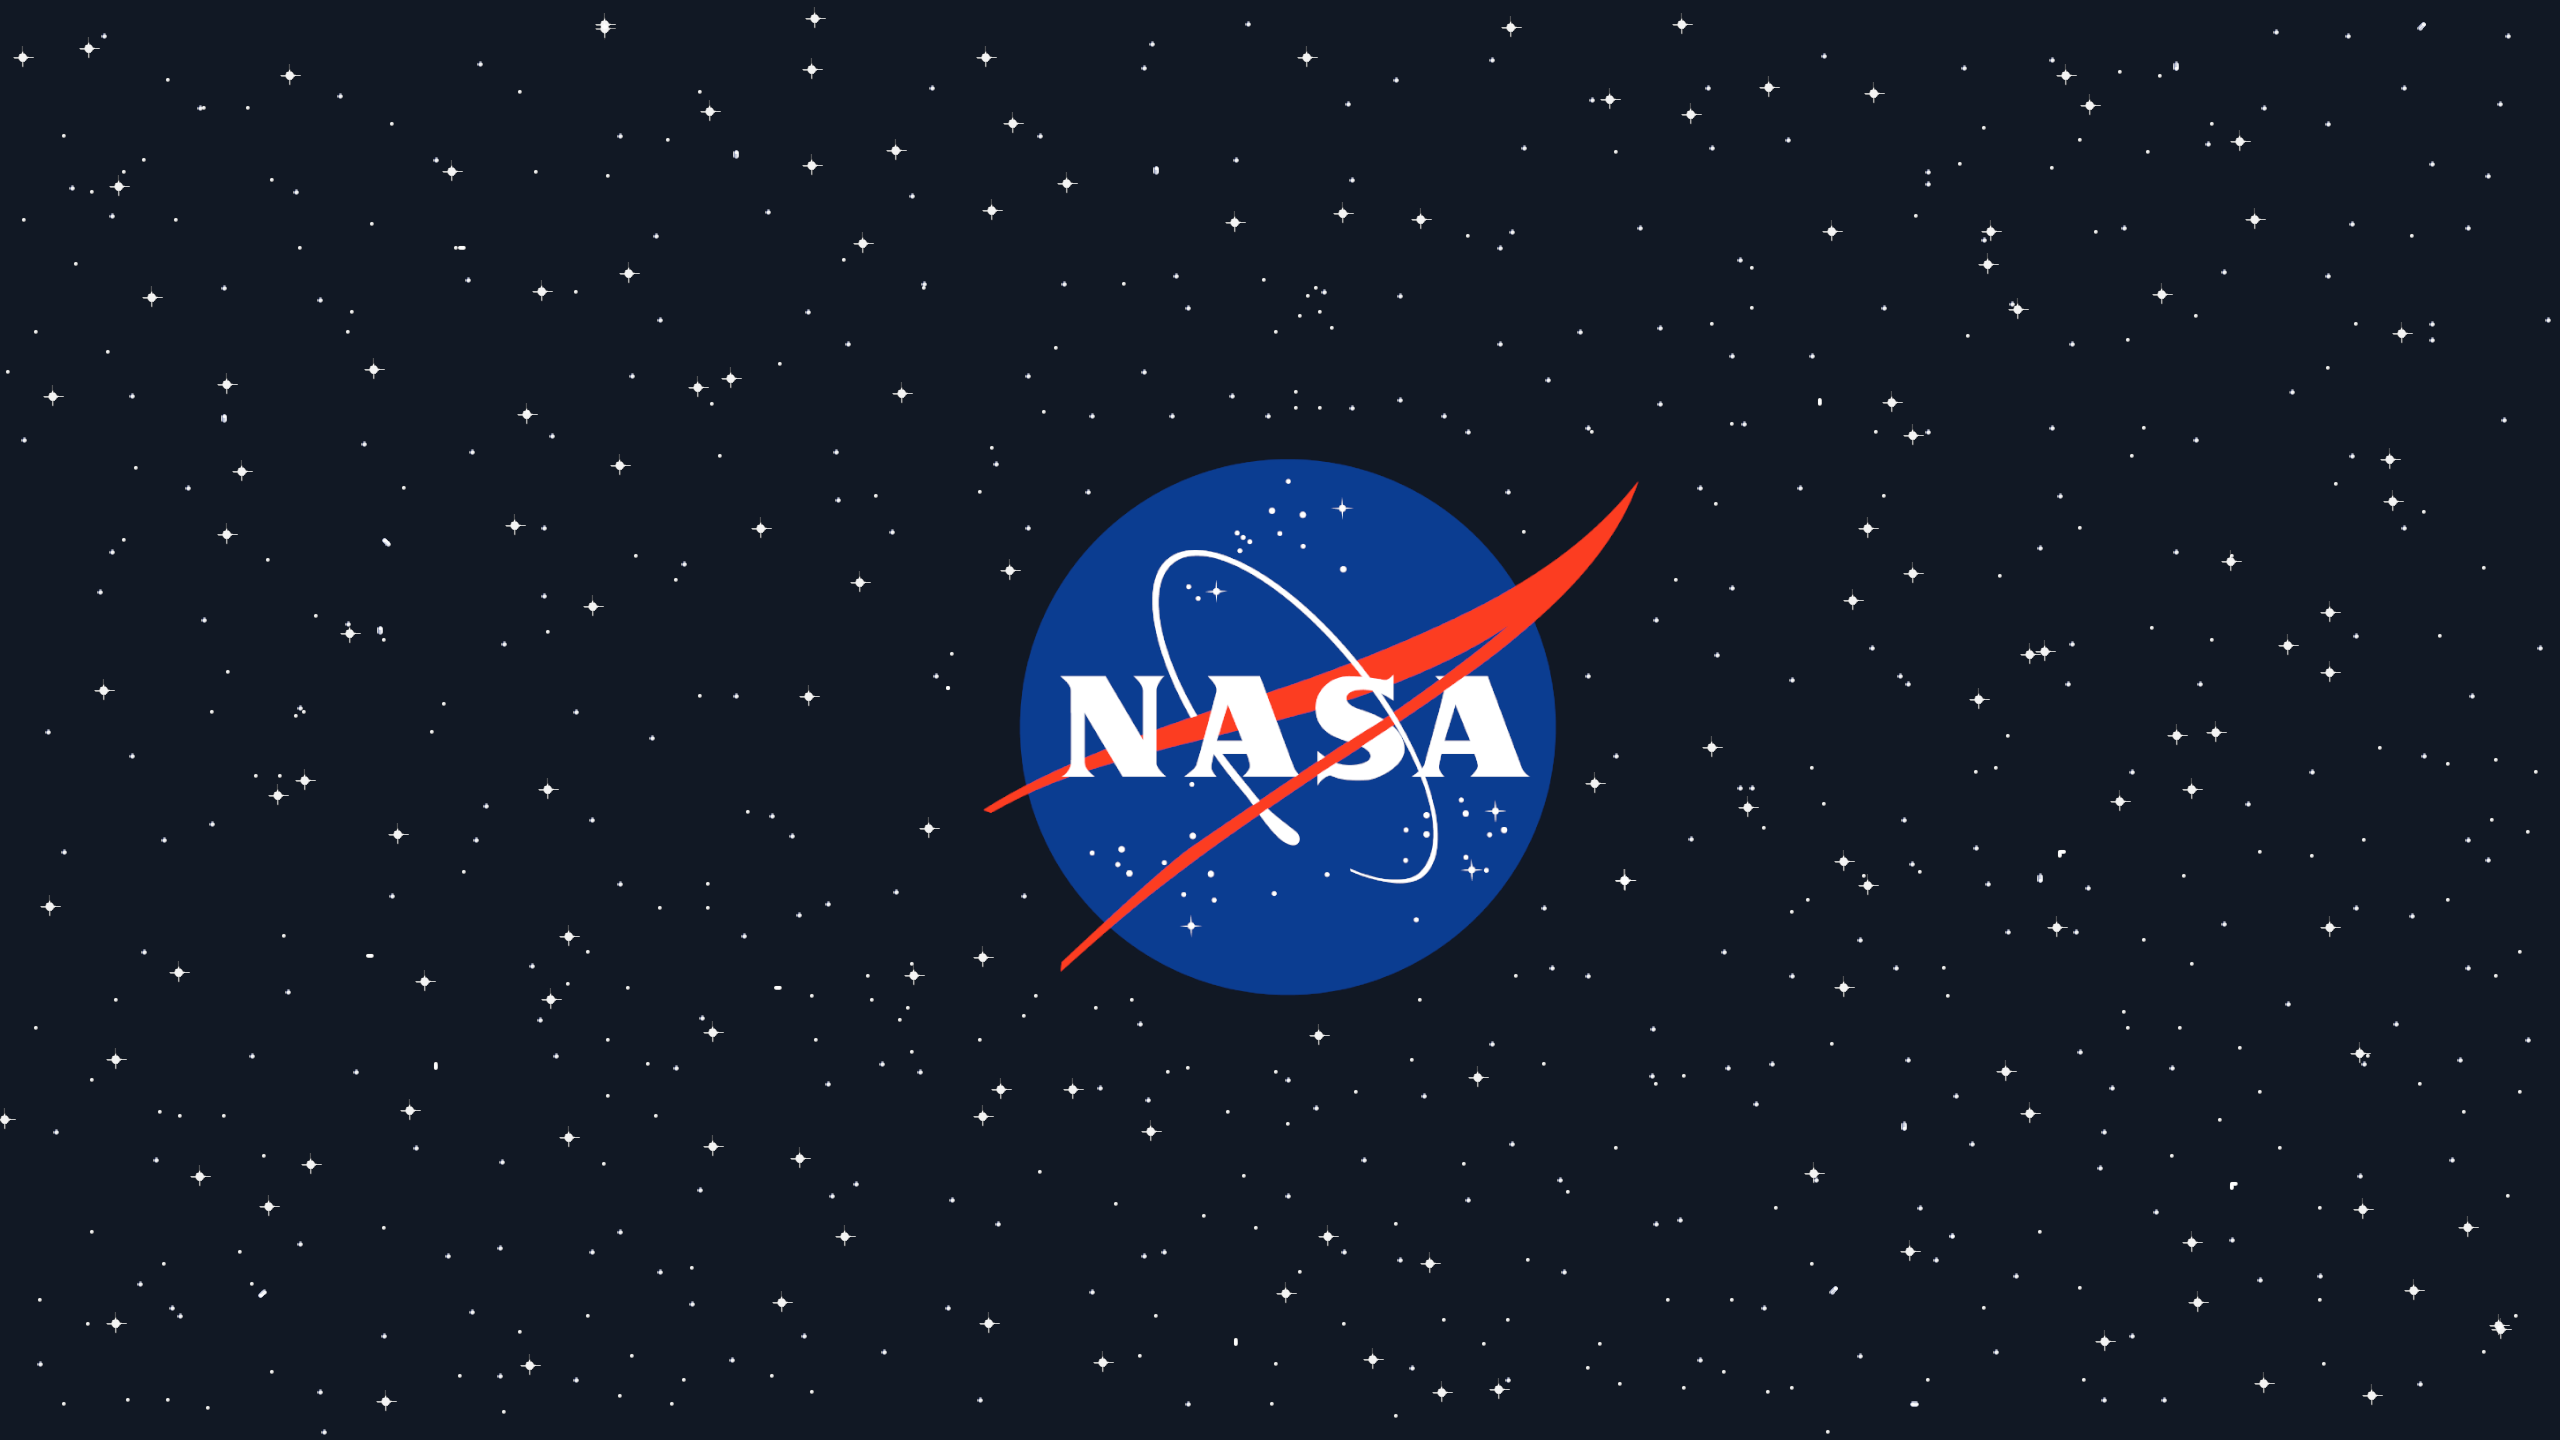 Made a NASA wallpaper. Hope you guys like it. [2560x1440